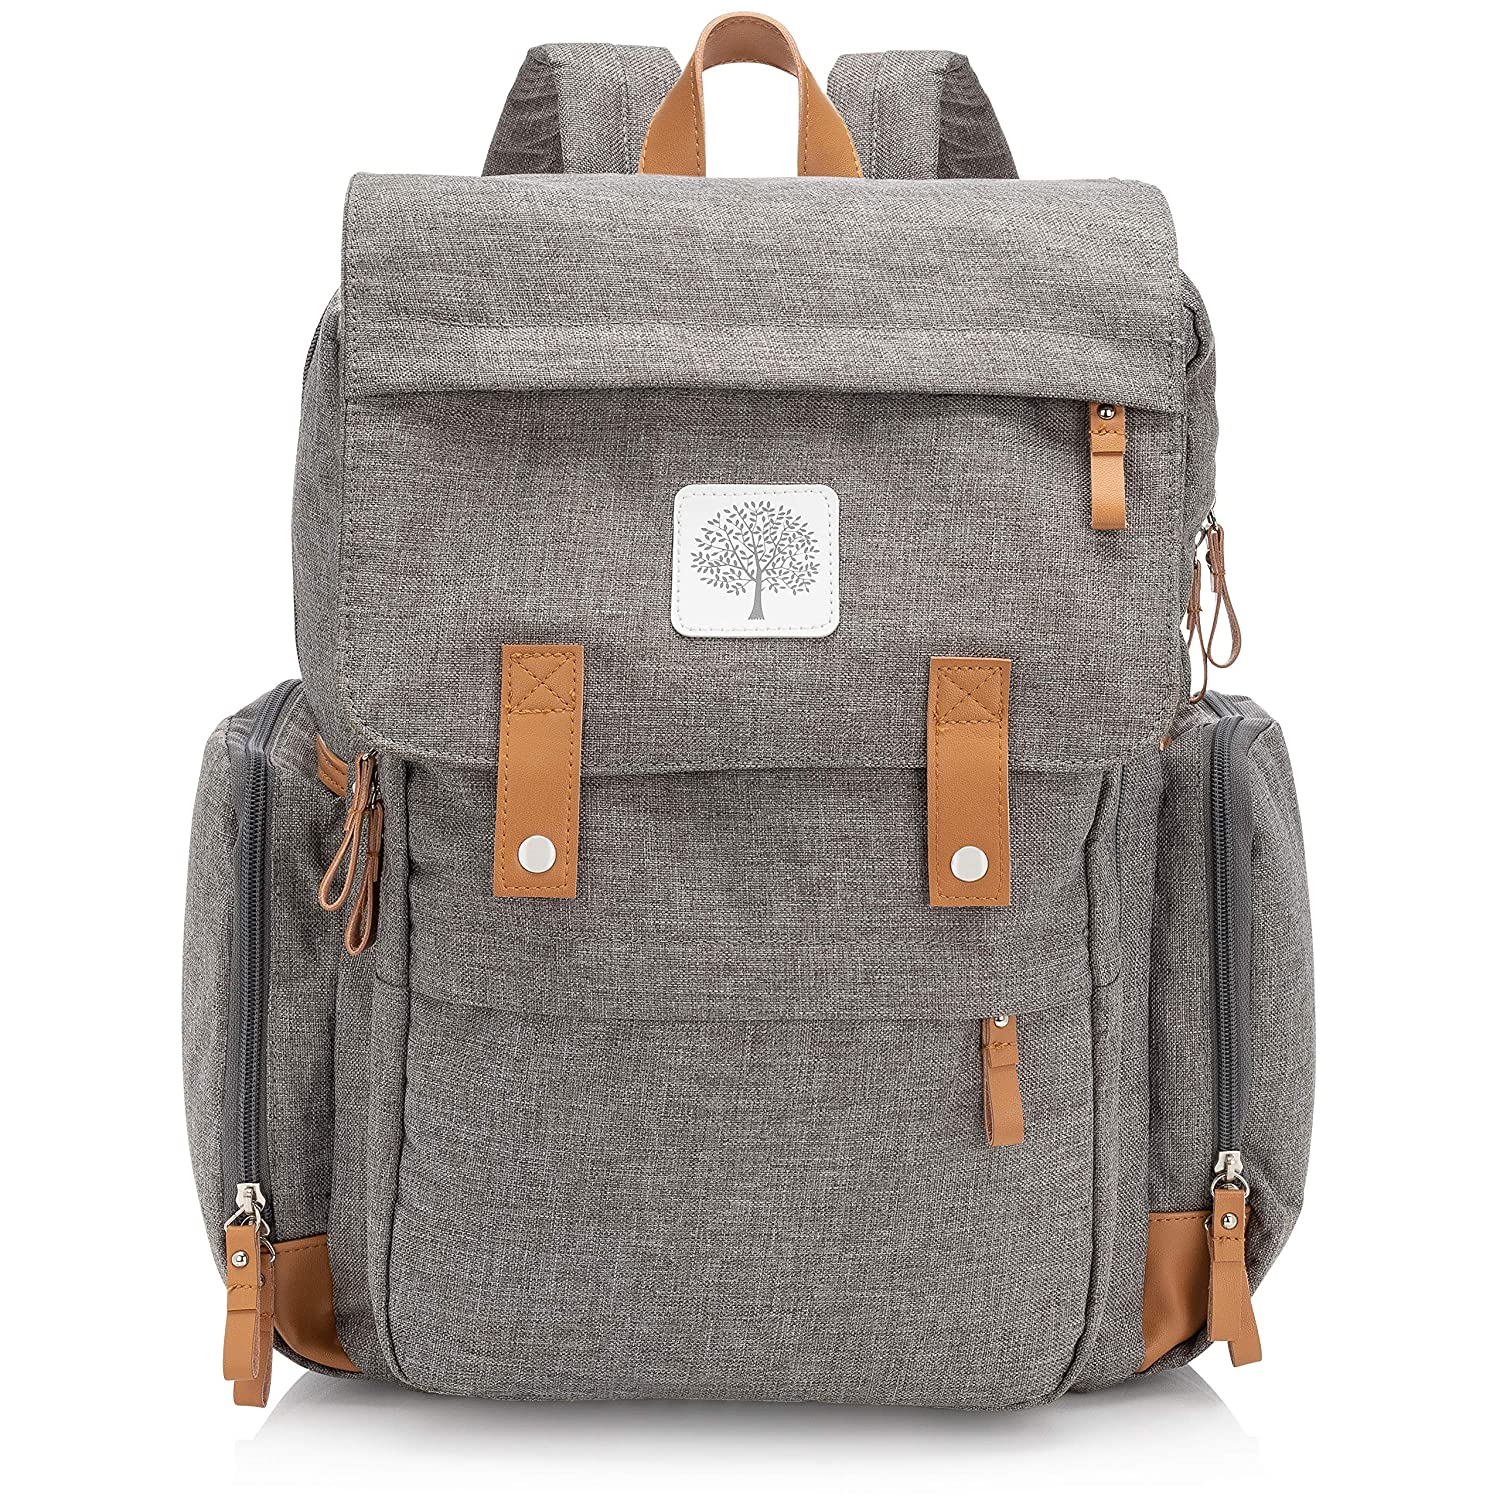 85b6bb83df Amazon.com : Parker Baby Diaper Backpack - Large Diaper Bag with Insulated  Pockets, Stroller Straps and Changing Pad -